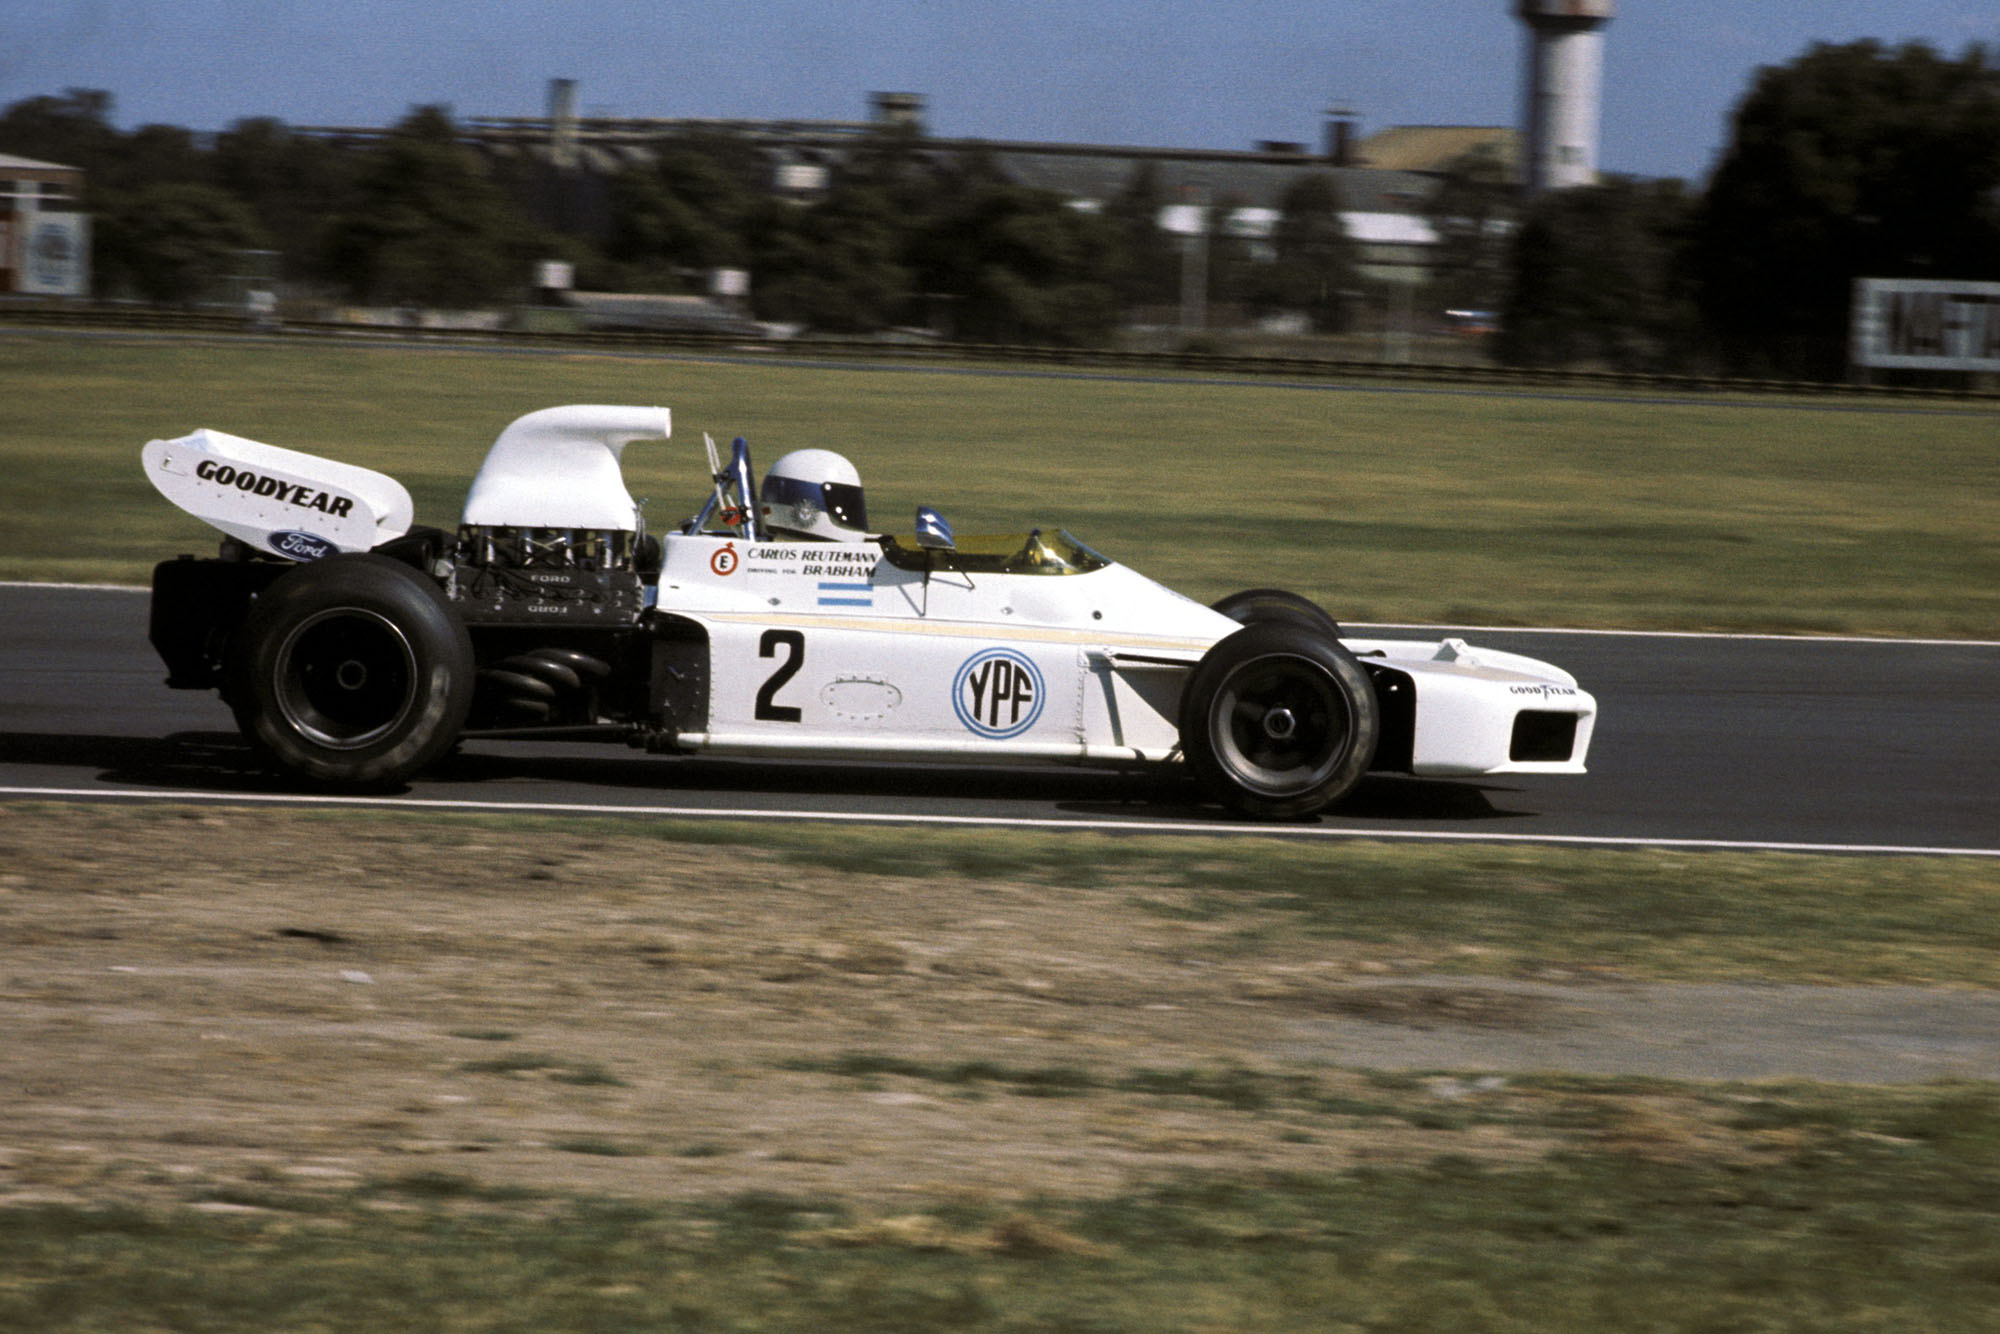 Carlos Reutemann driving at the 1972 Argentine Grand Prix for Brabham.